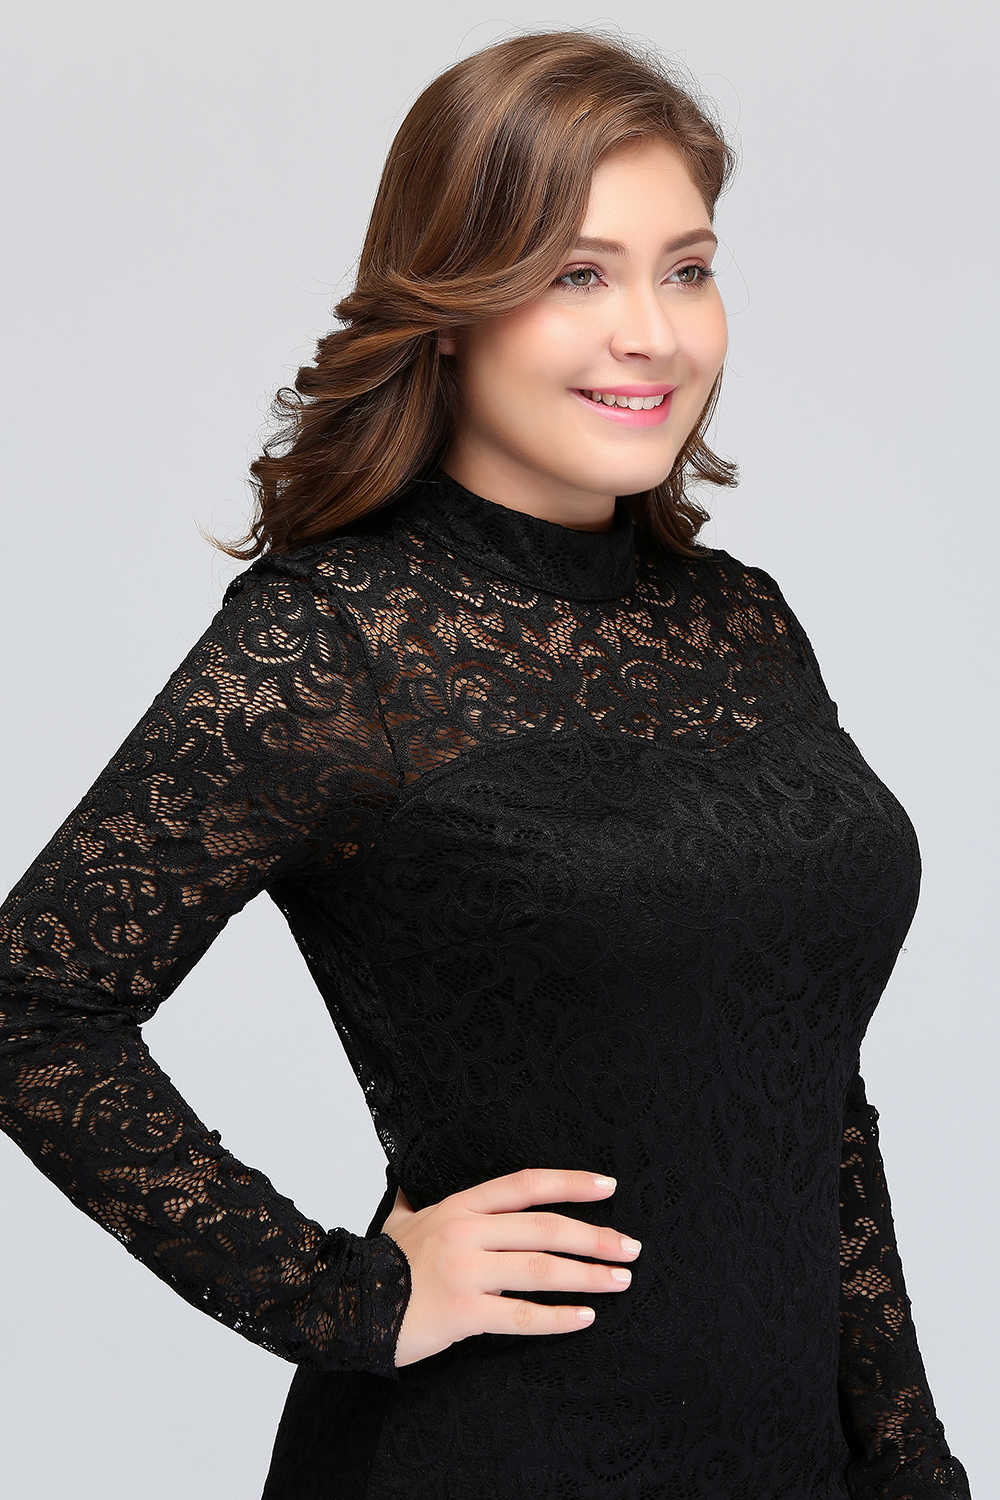 10373b30a6 ... Cheap cocktail dresses plus size Women s Sexy Lace Long Sleeve Knee  Length Short cocktail party dress ...